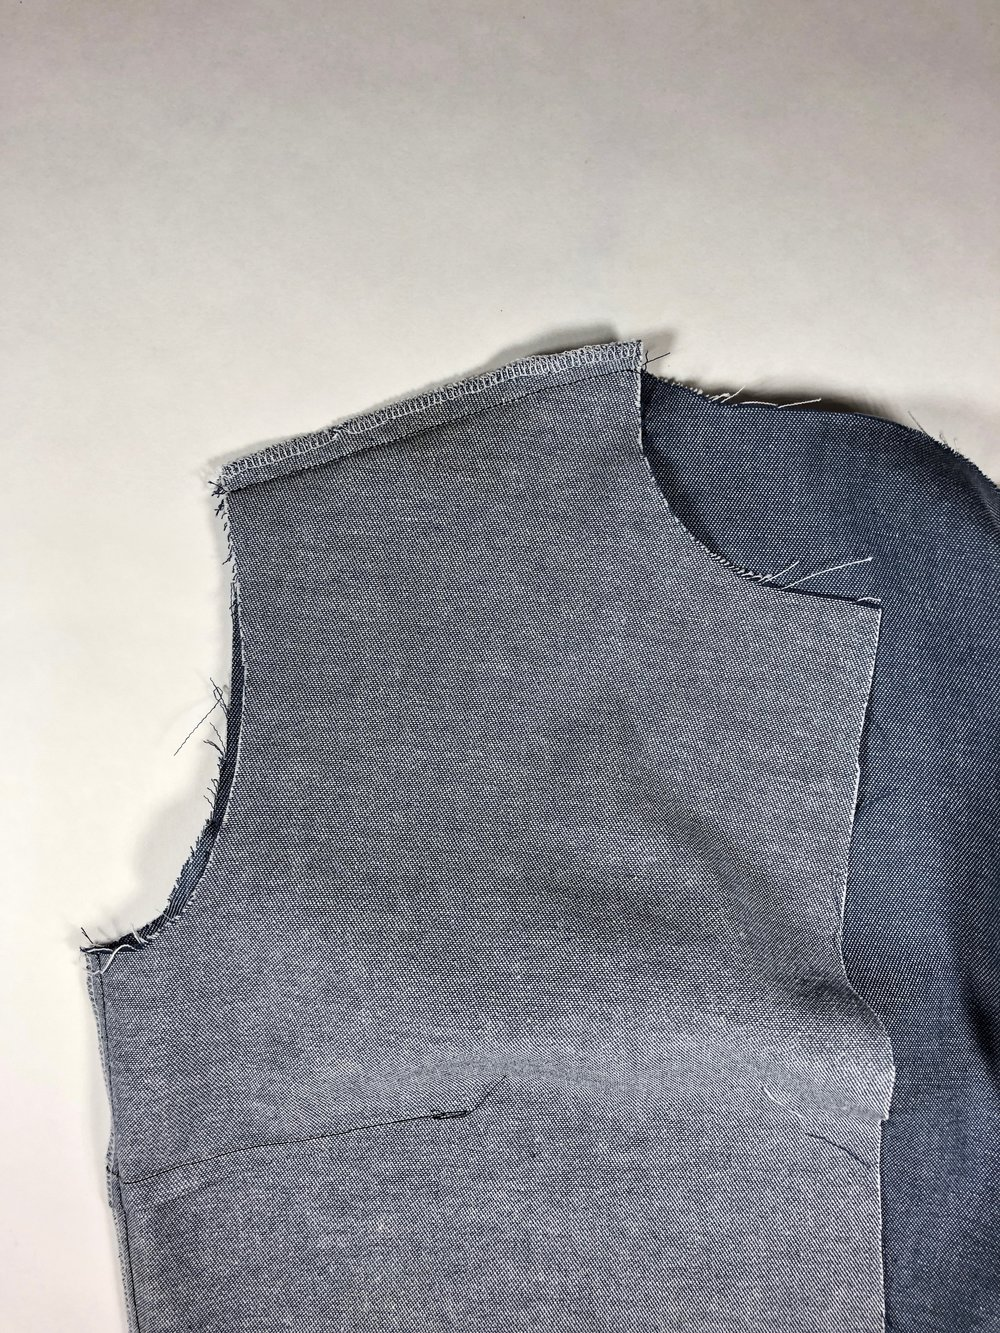 37. Press the side seam towards the back.  38. Press the shoulder seam towards the front.